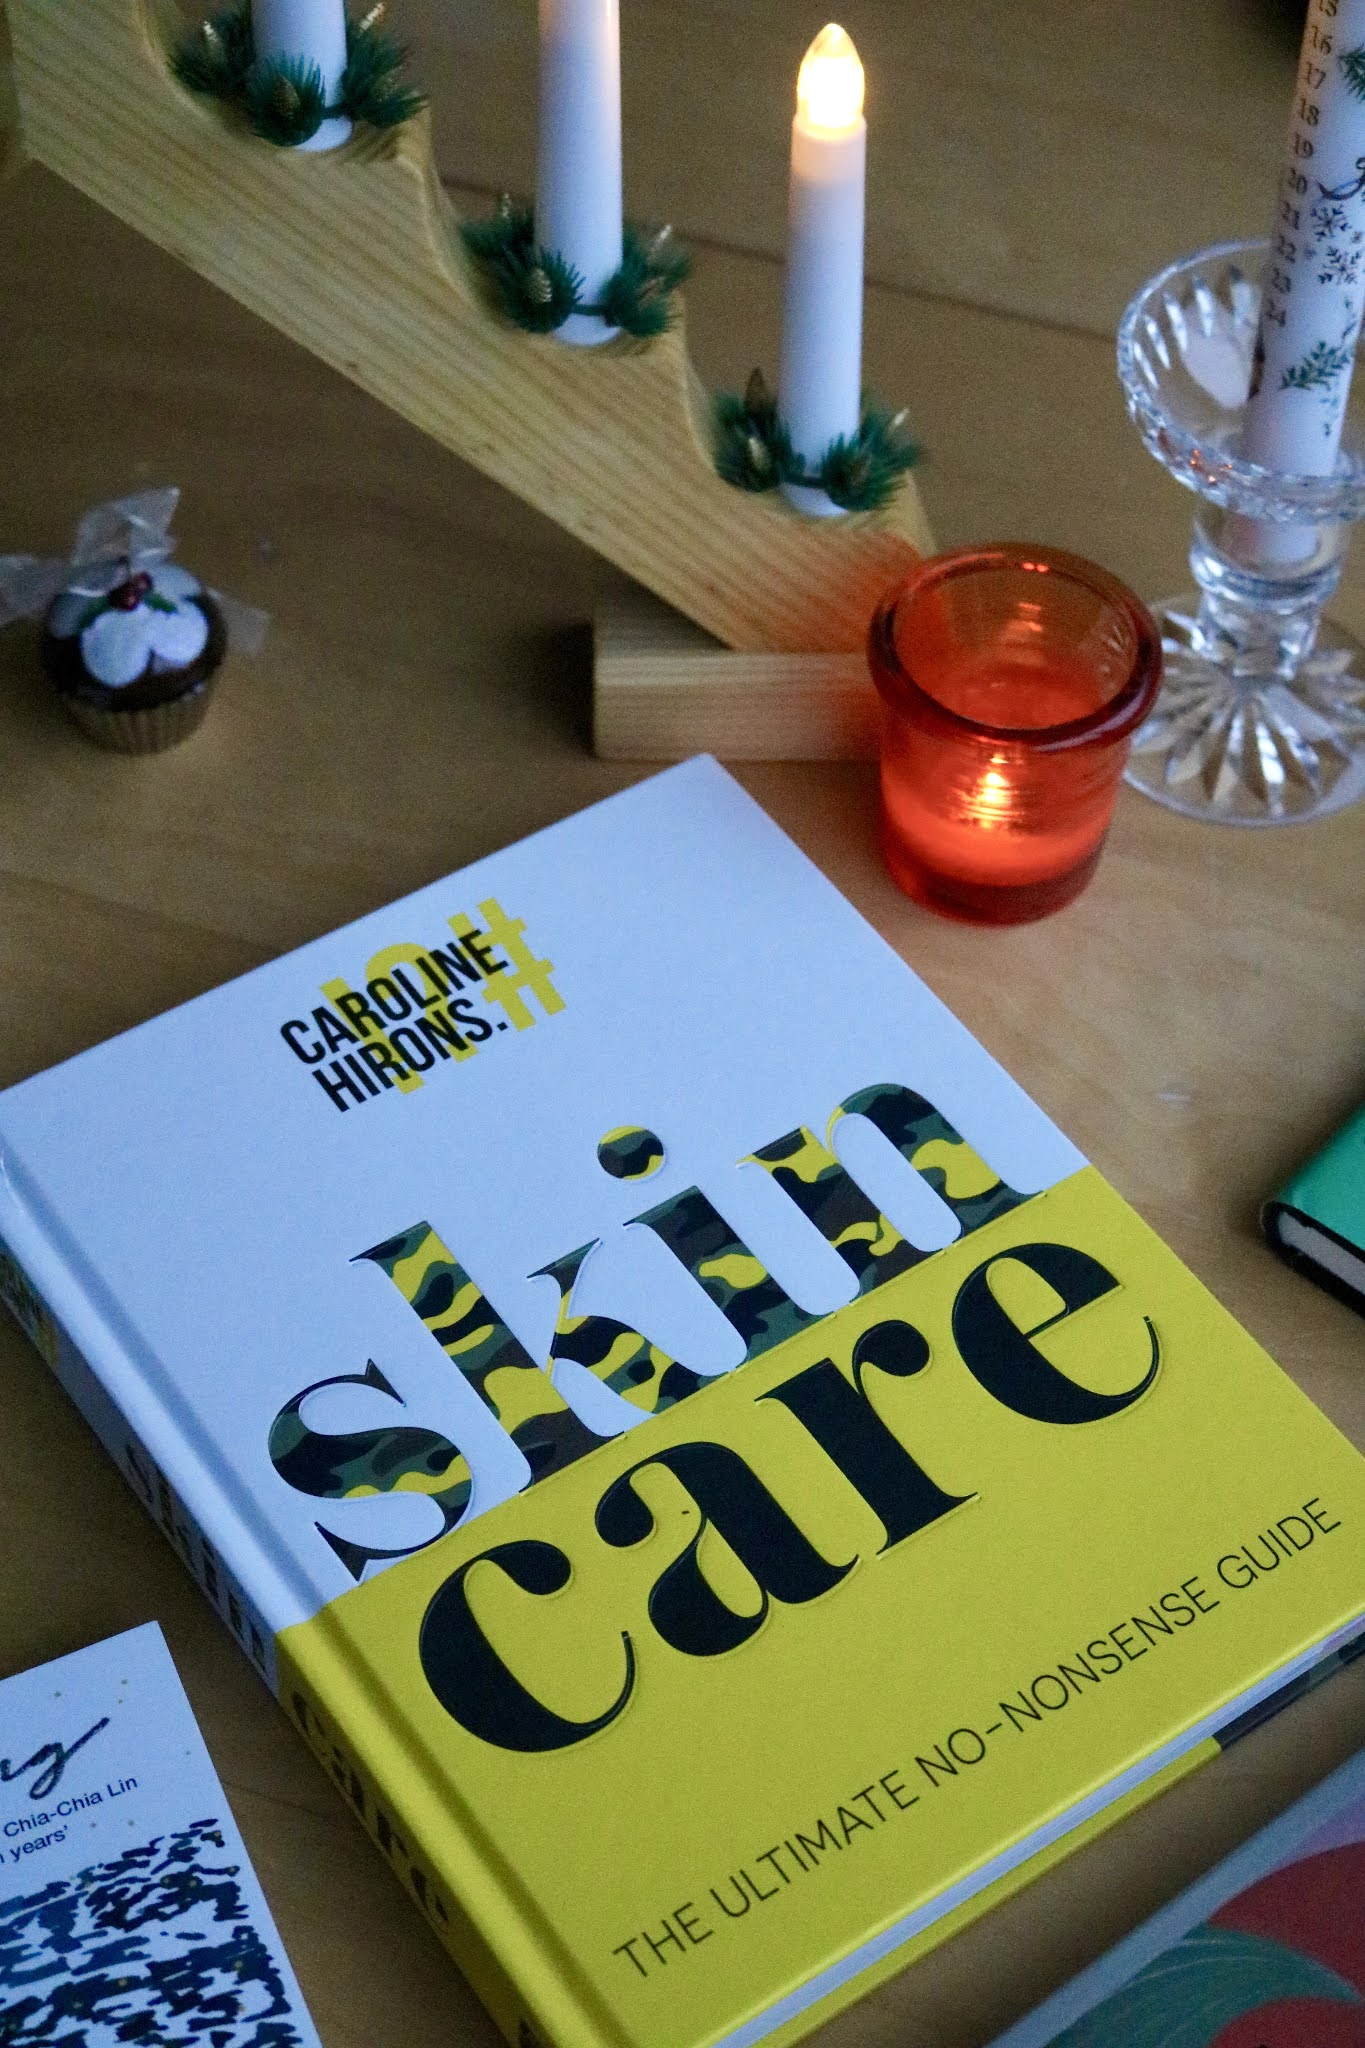 SKINCARE: THE ULTIMATE NO-NONSENSE GUIDE BY CAROLINE HIRONS BOOK